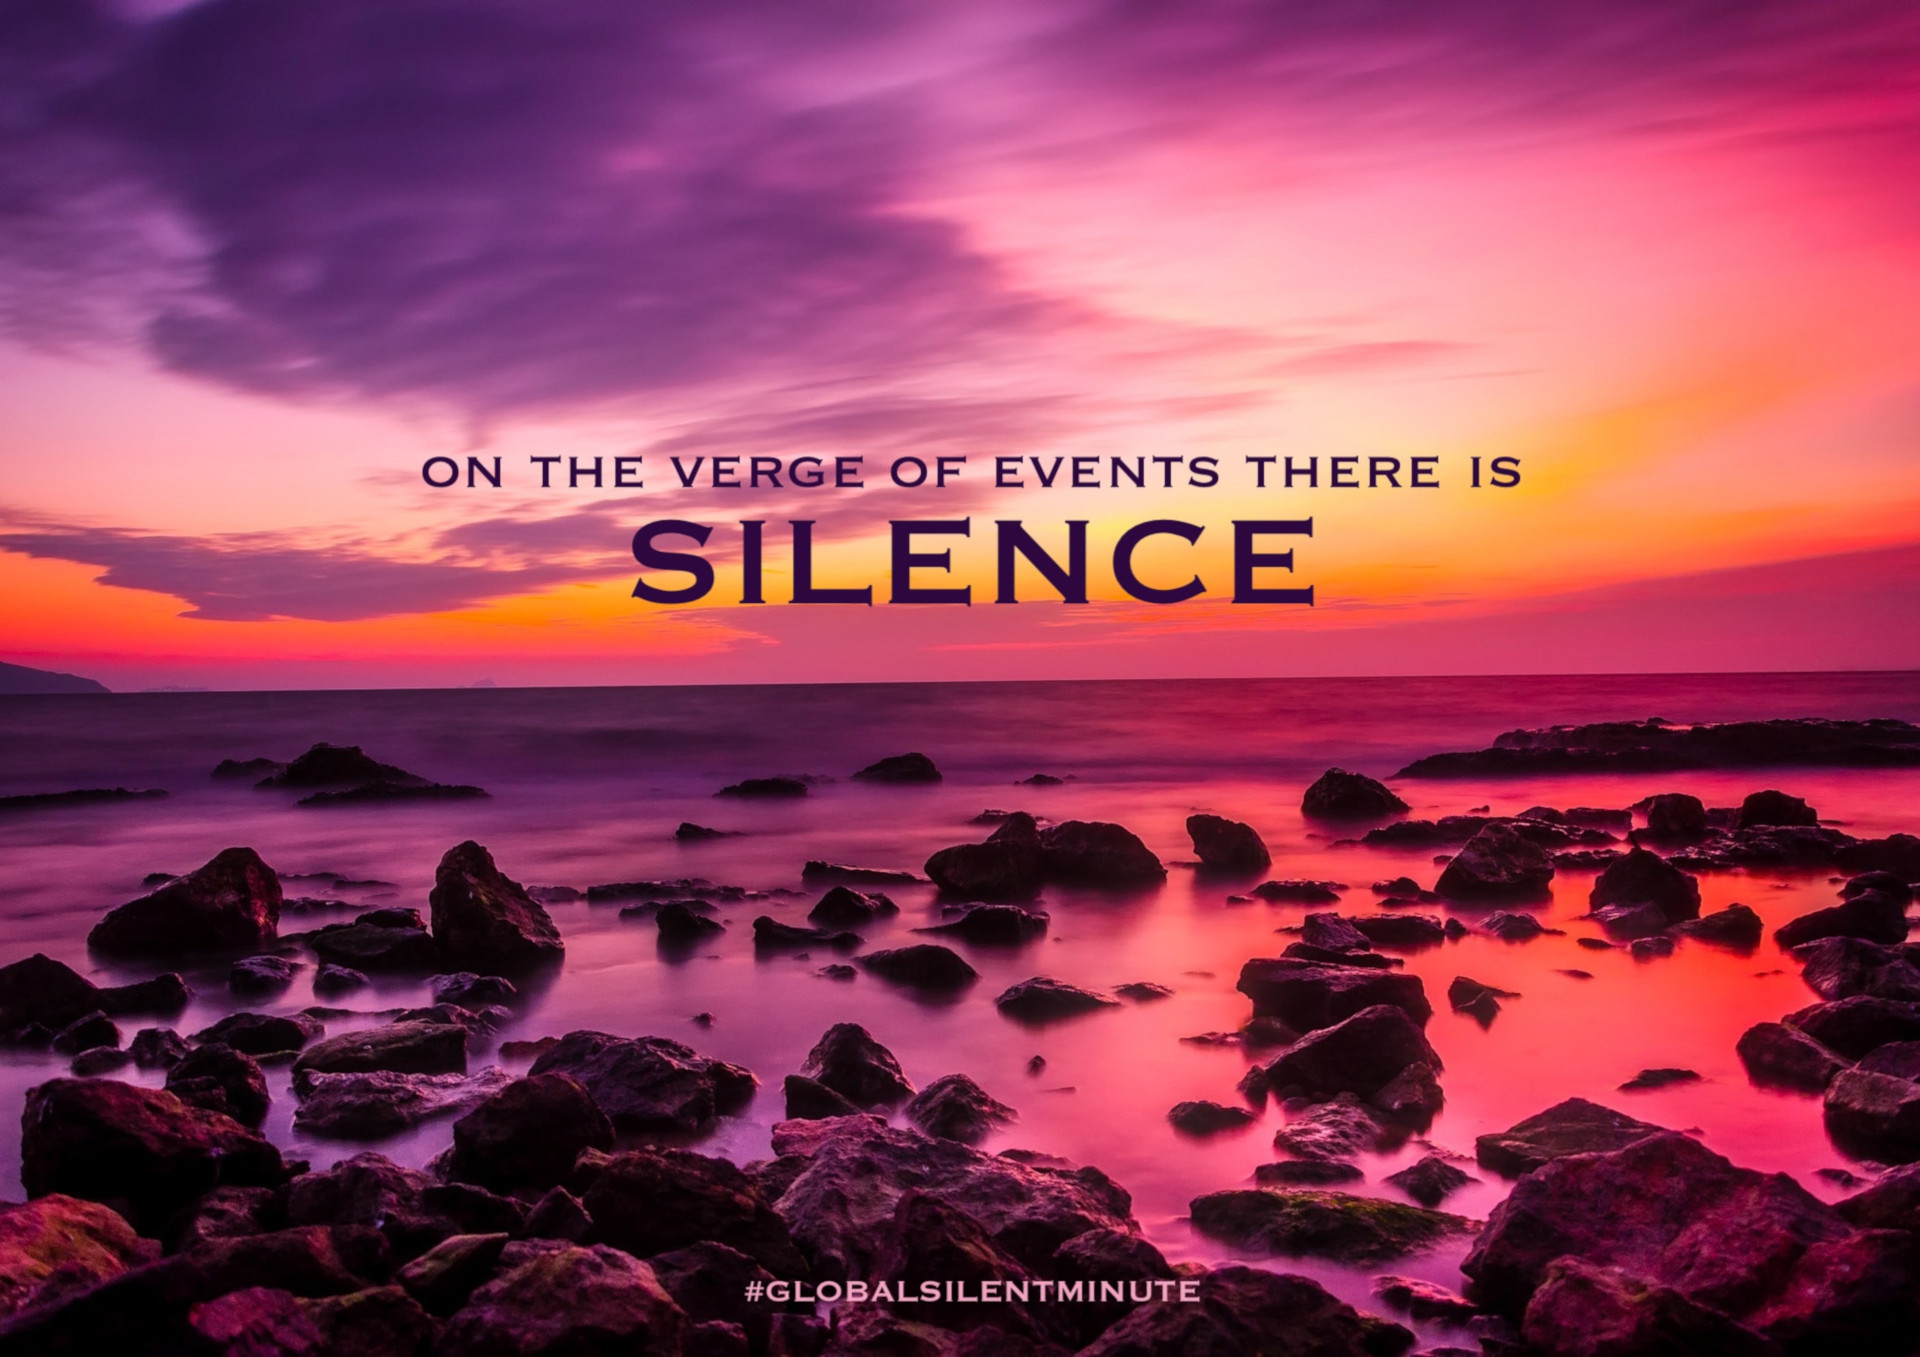 1.On the verge of events there is Silence